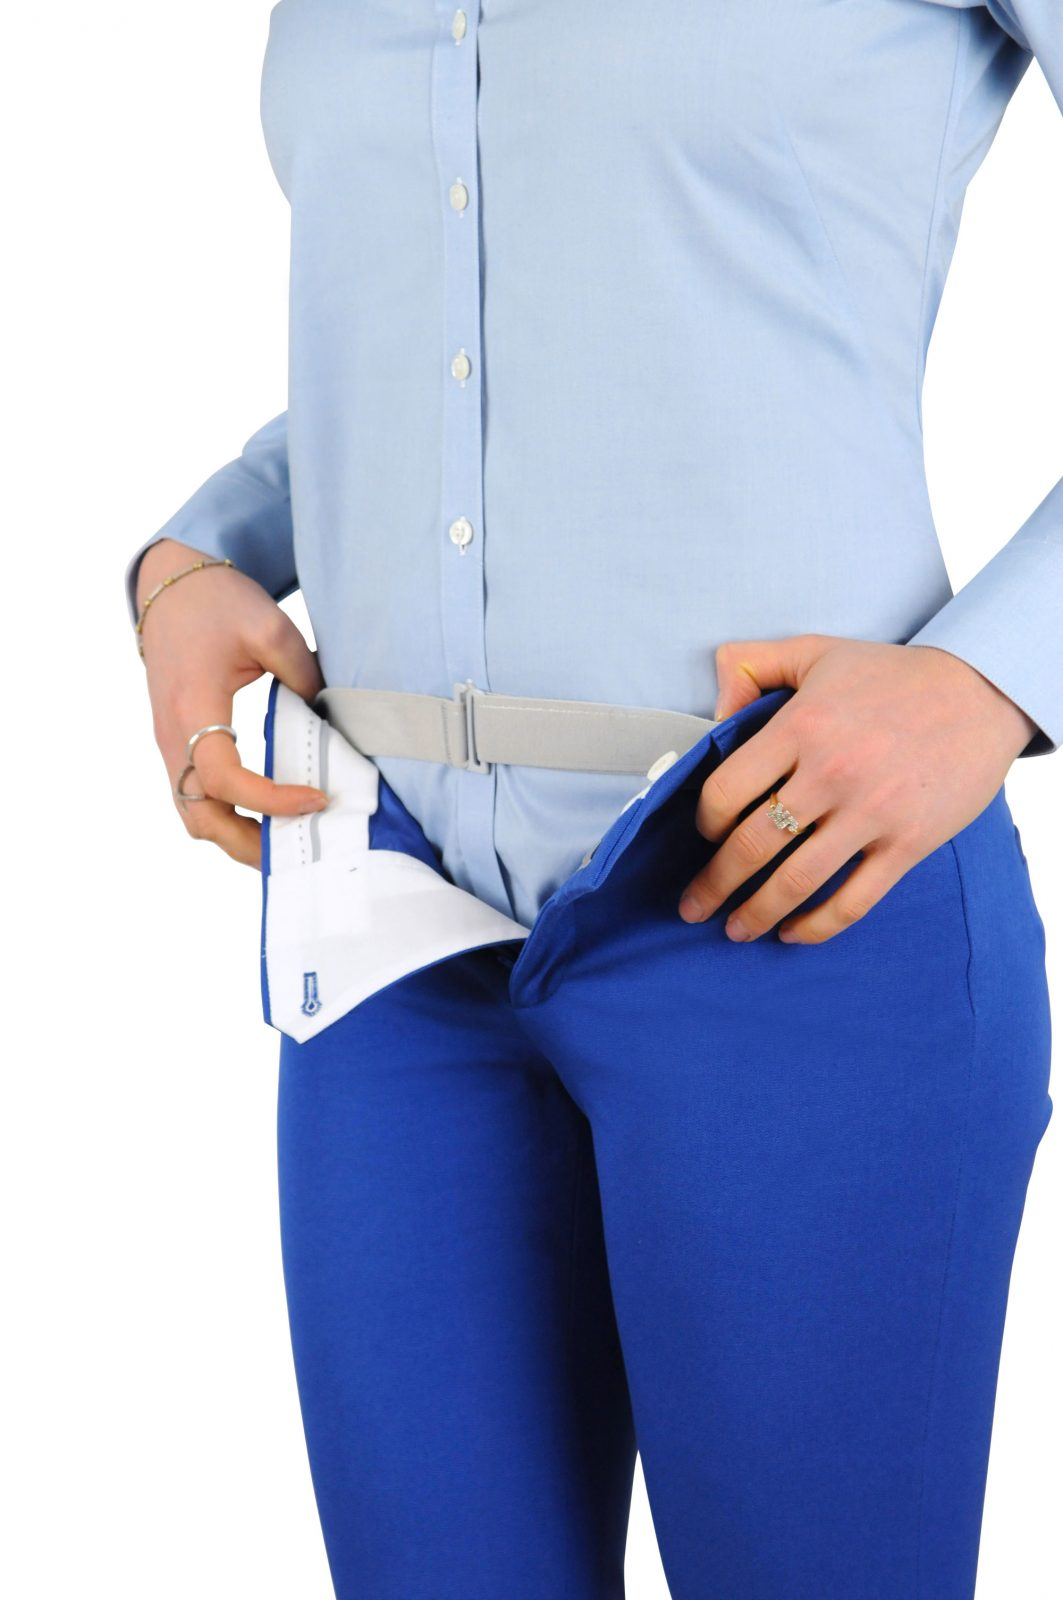 Woman wearing Tuck-N-Sta under her pants but over her shirt keeping her shirt neatly tucked all day